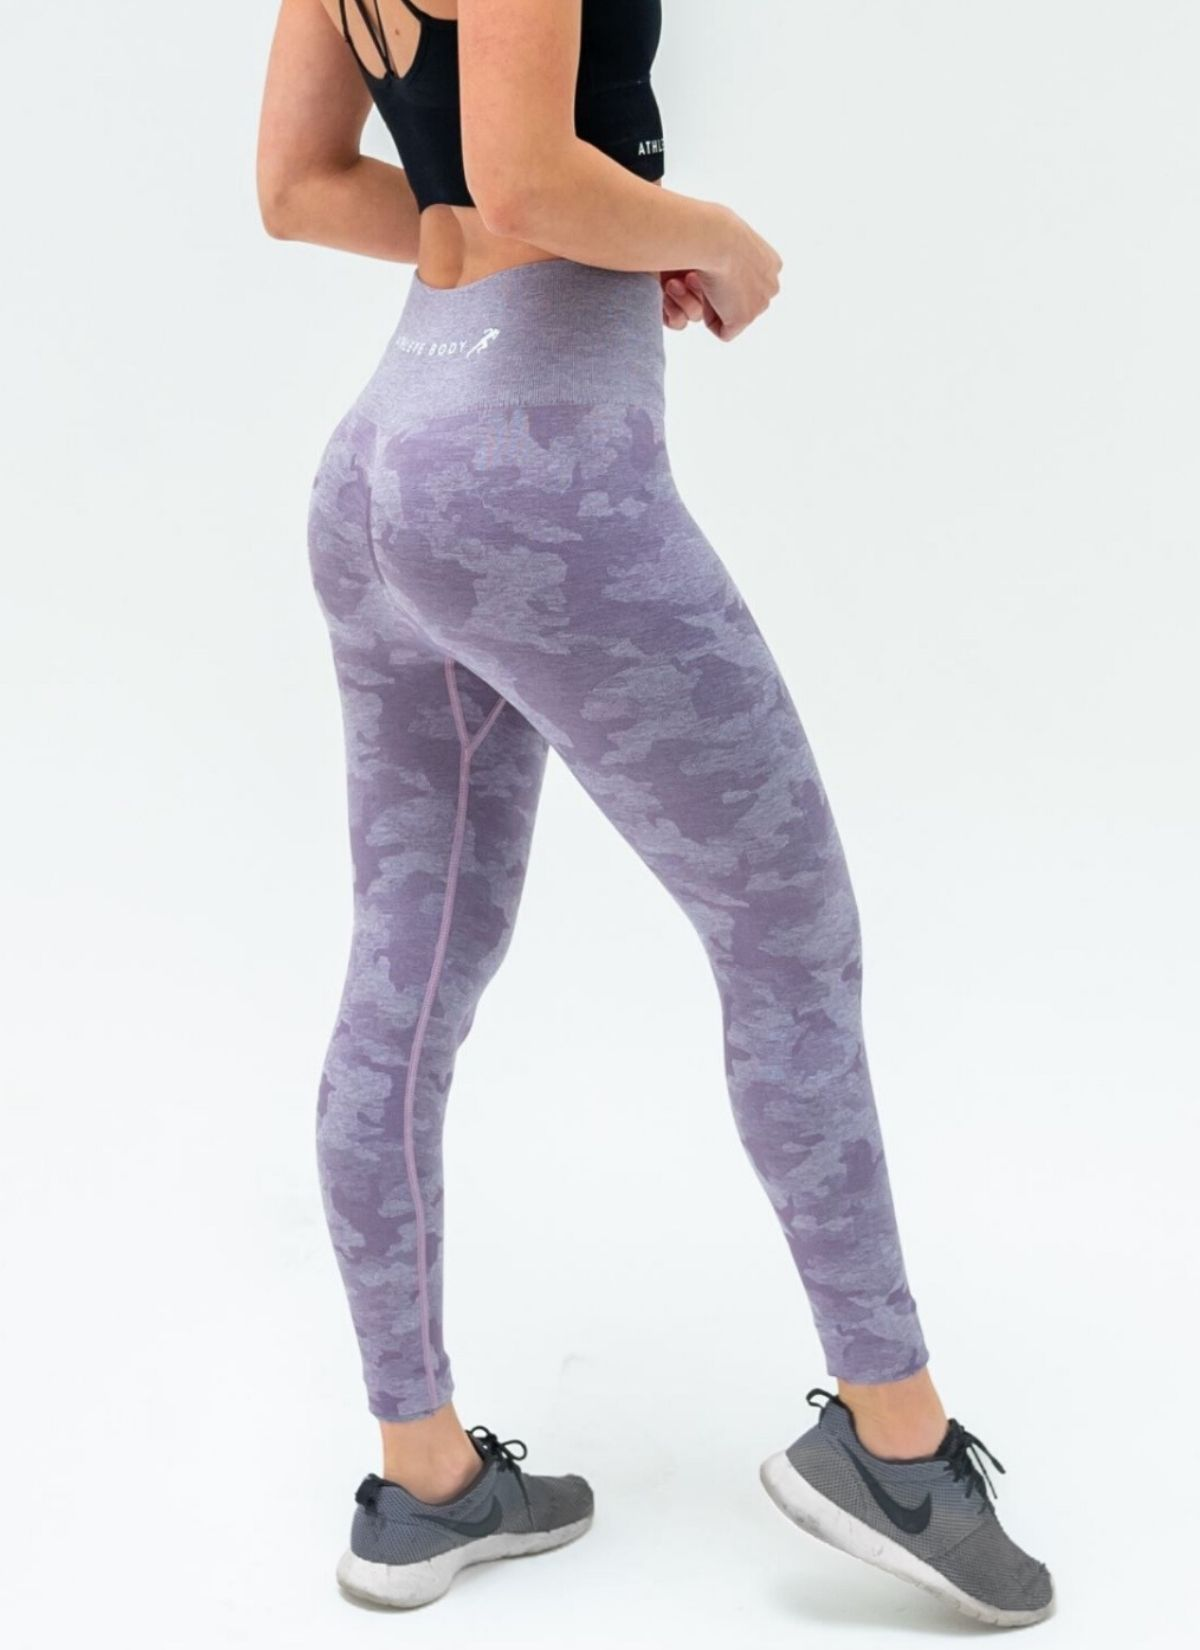 Triumph Seamless Purple Camo Leggings - Athlete Body